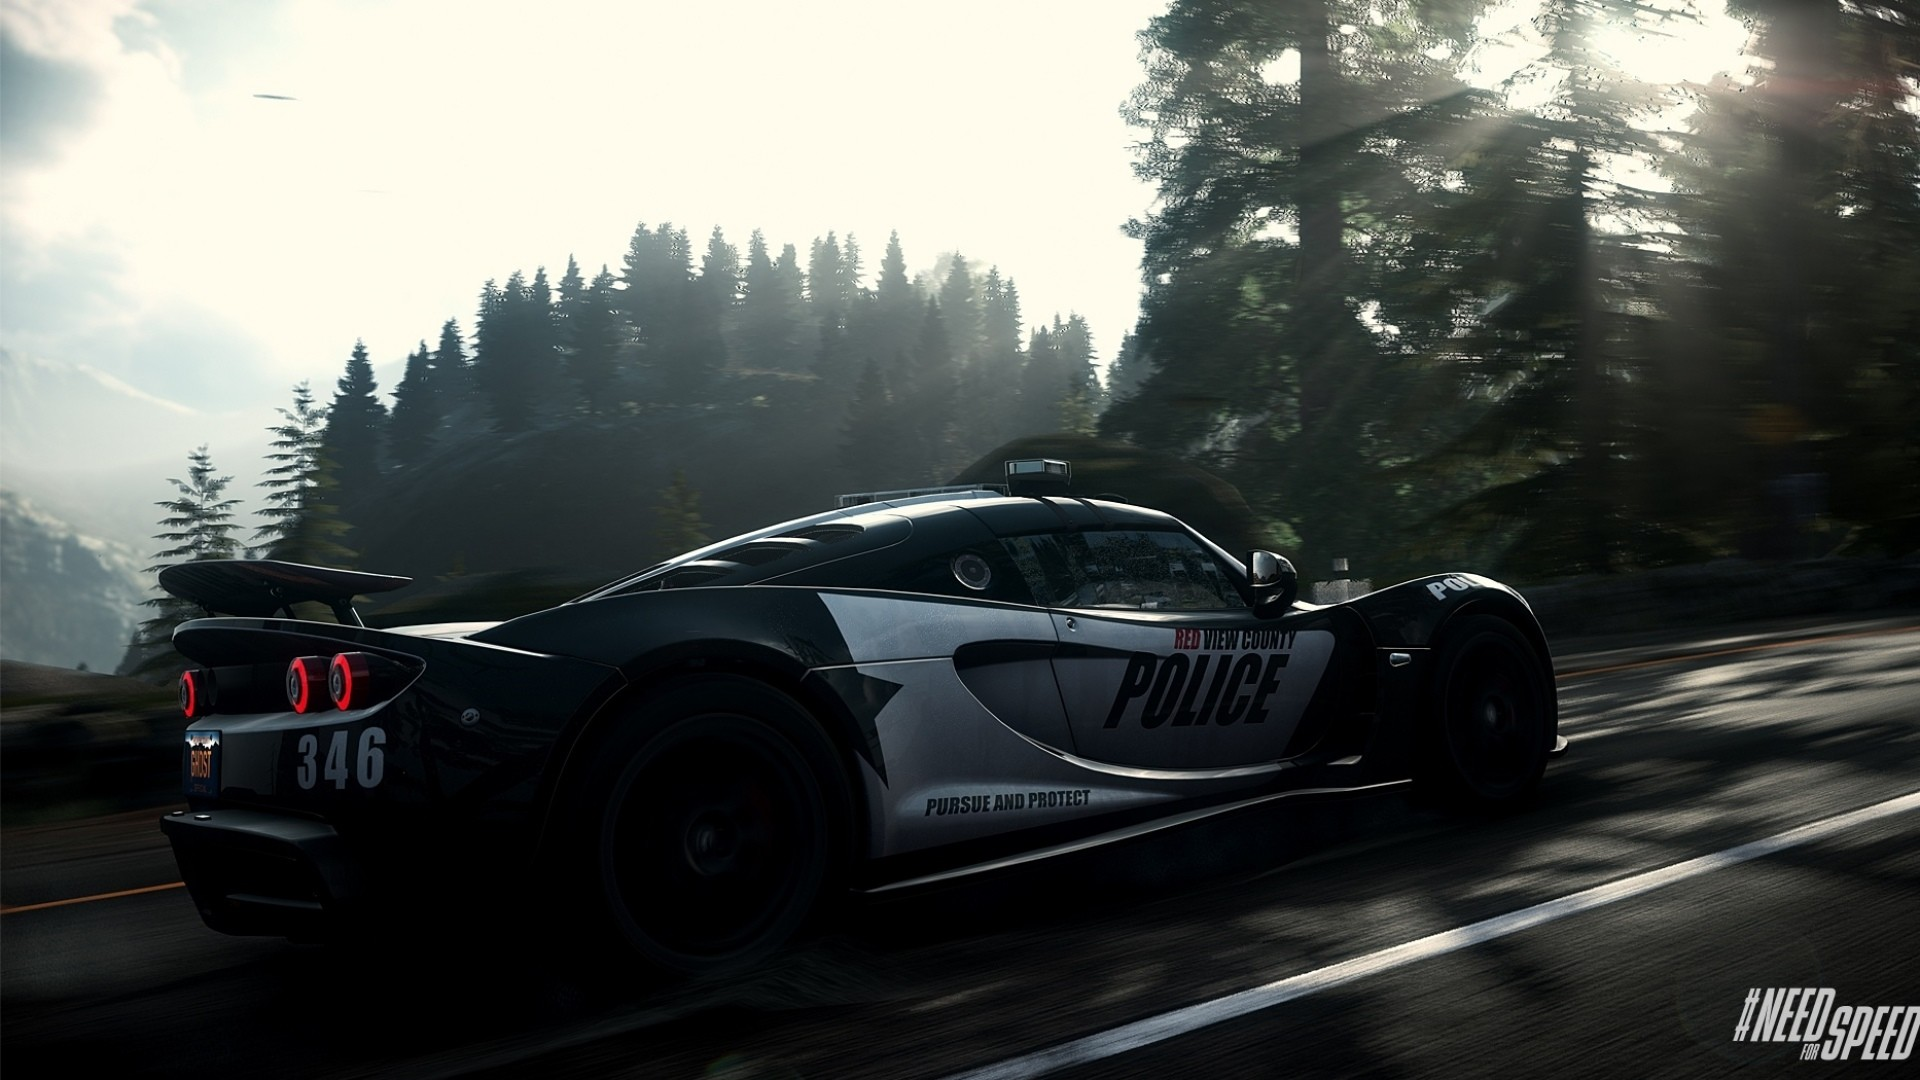 Res: 1920x1080, Need for Speed Rivals Police Car Wallpaper